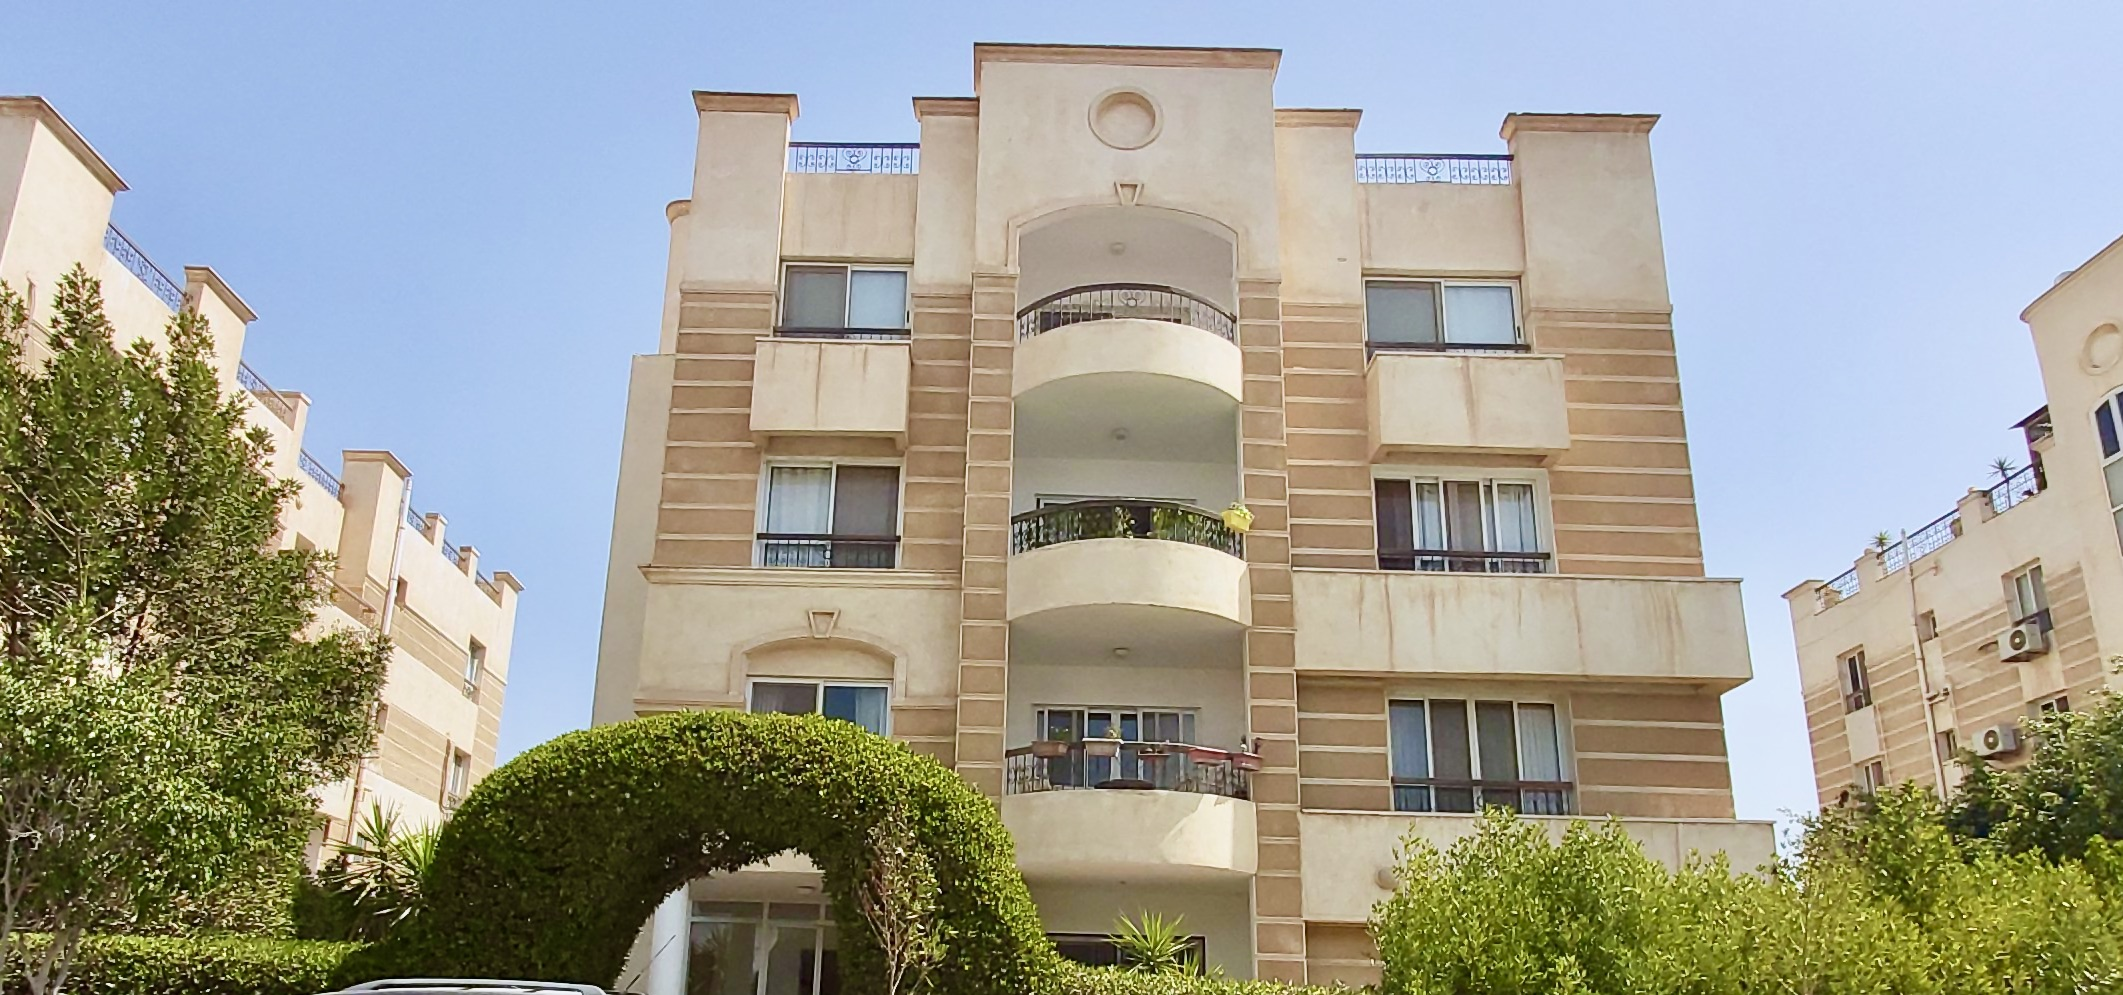 ZD101 apt, Beverly Hills, 6th of October